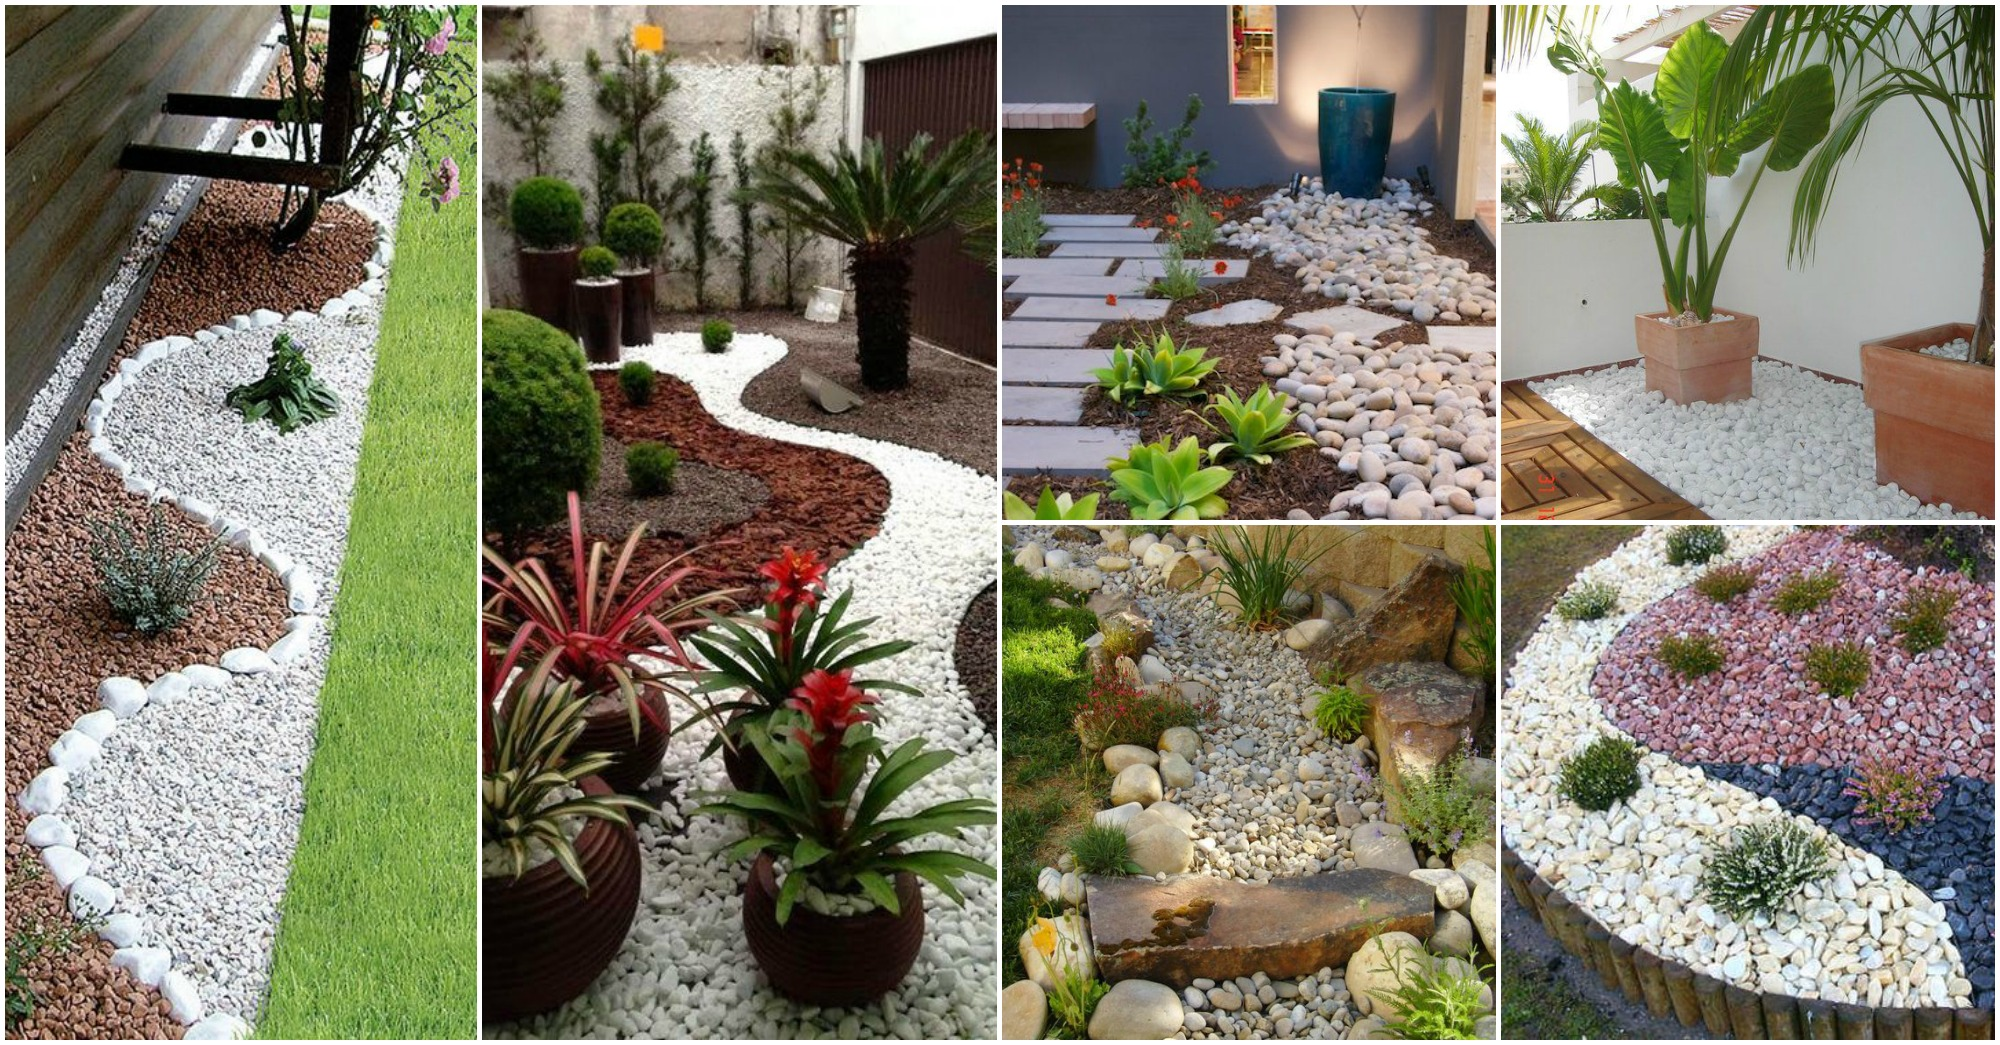 20 hermosas ideas para decorar tu jard n con piedras for Ideas para decorar el jardin de mi casa